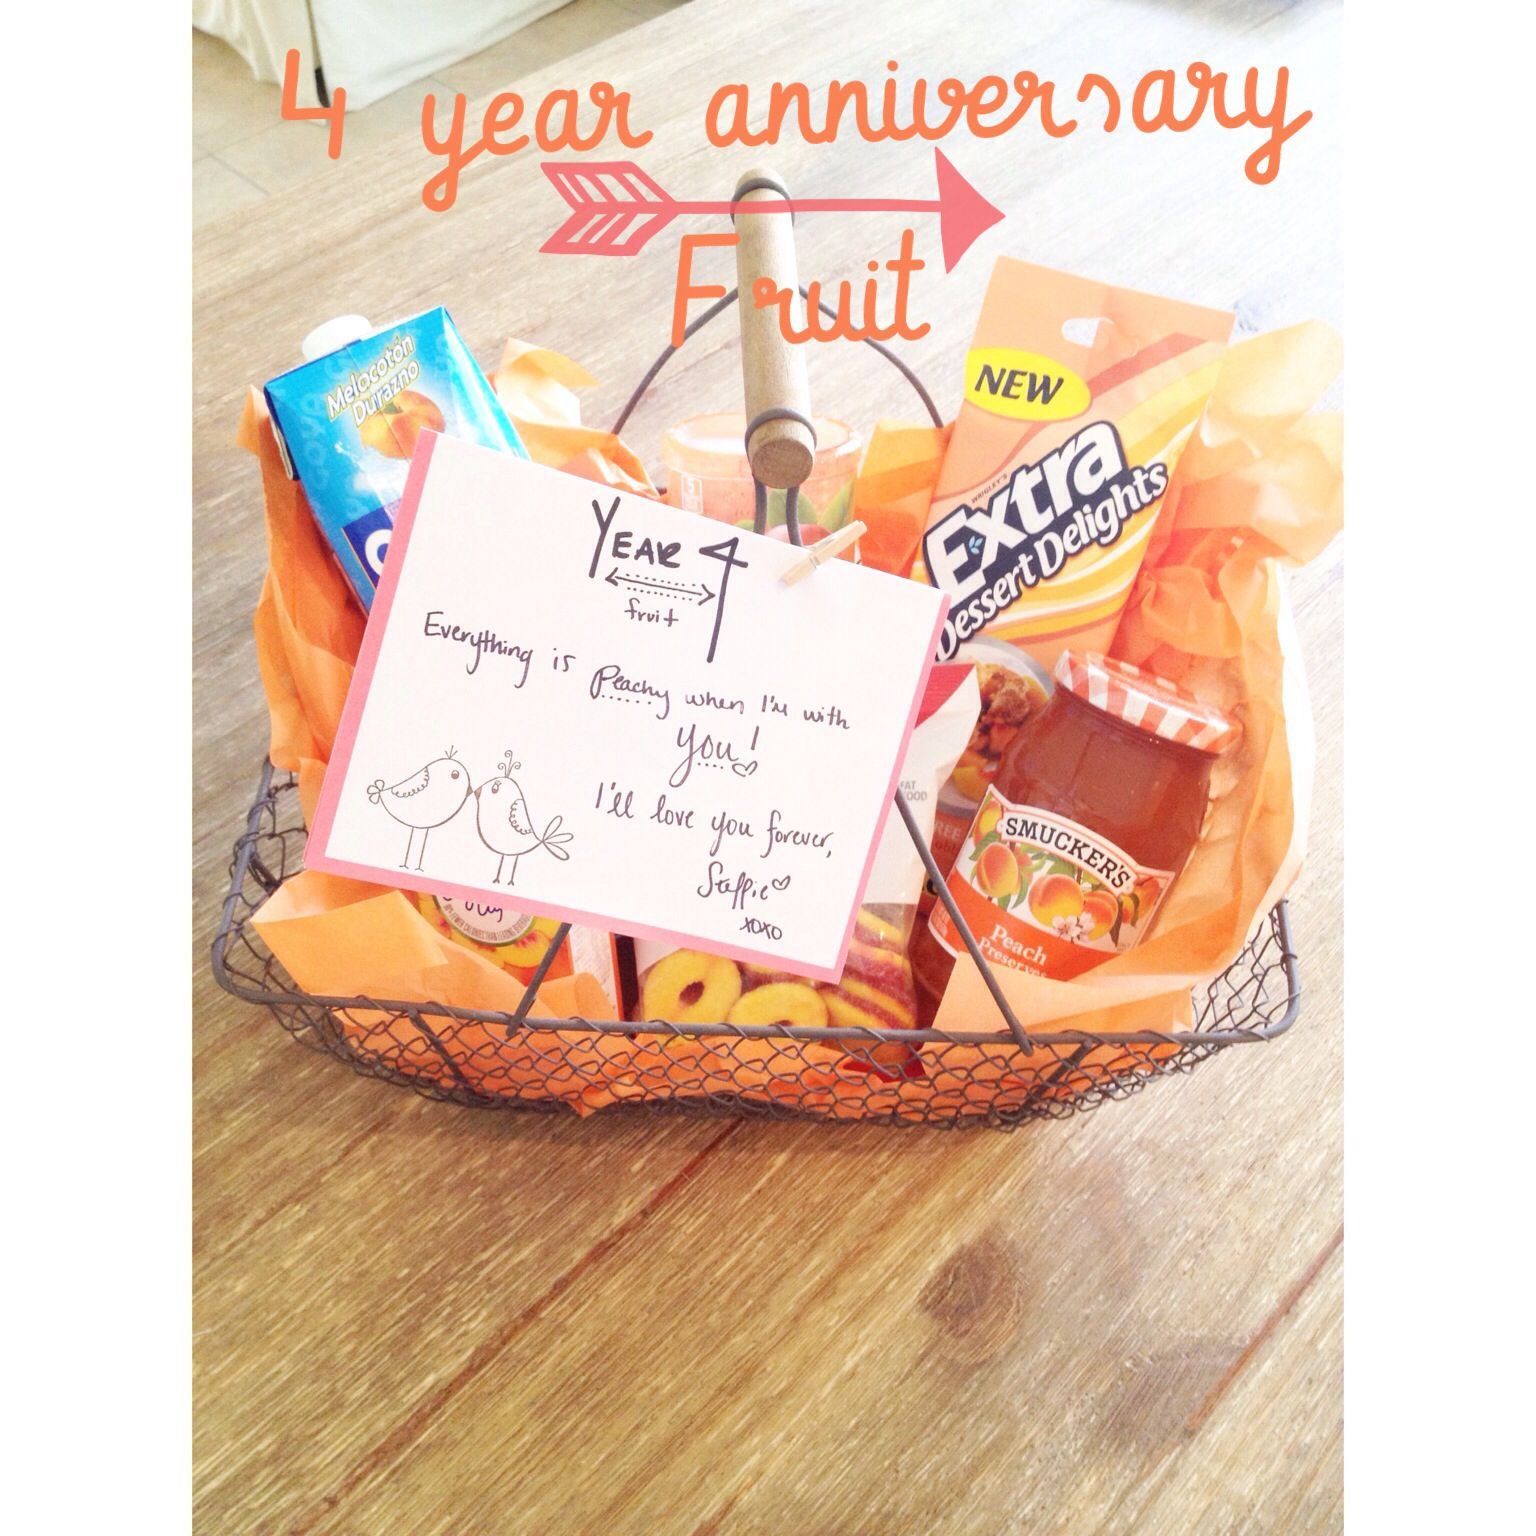 Fourth Wedding Anniversary Gift Ideas For Him: 4 Year Anniversary Gift! Tradition: Fruit Everything Is